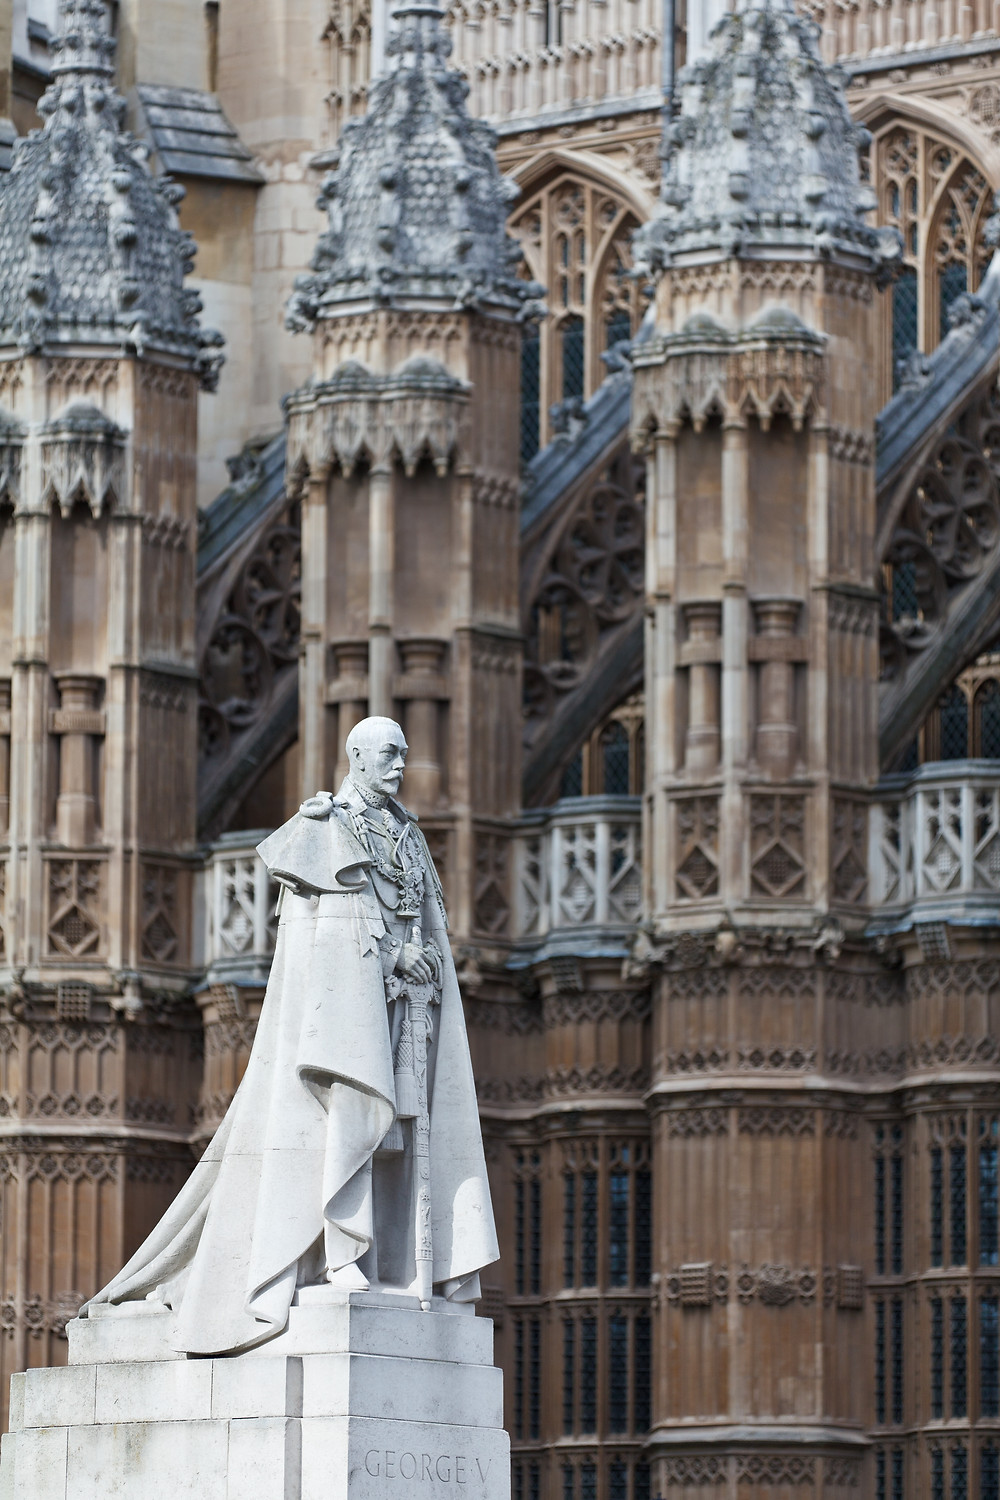 statue of King George V at the Henry VII Chapel at Westminster Abbey